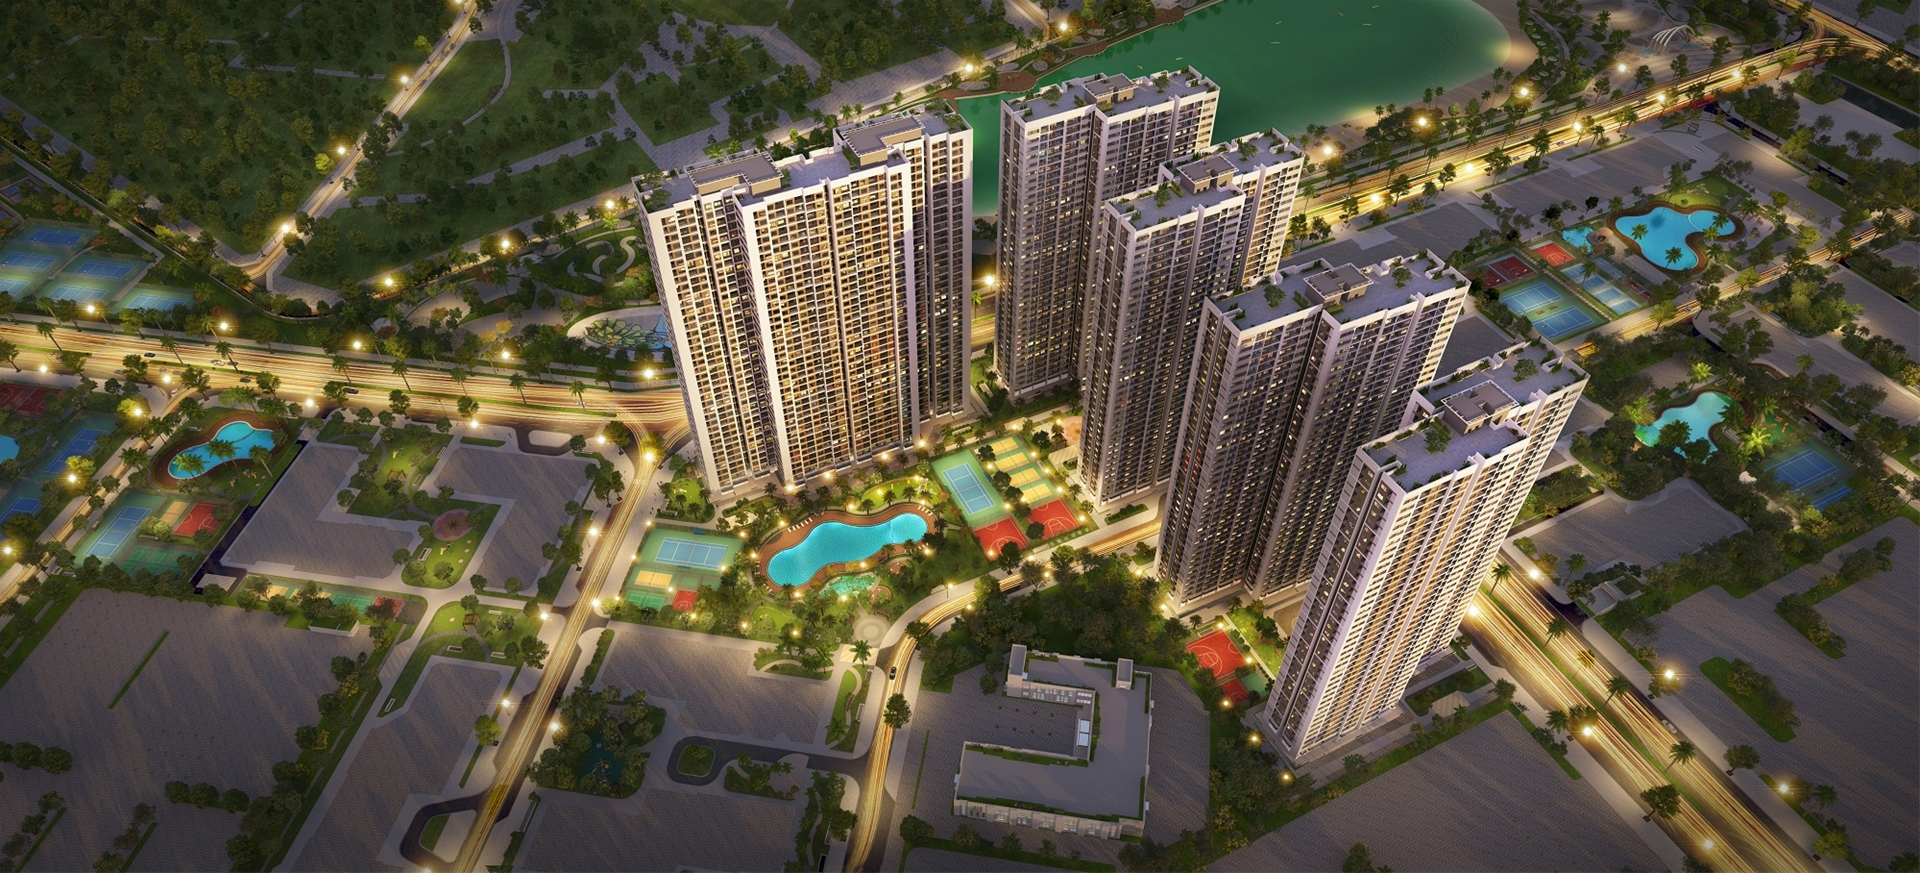 MIKGROUP EXPANDS IMPERIA BRAND TO CONQUER THE WEST HANOI MARKET